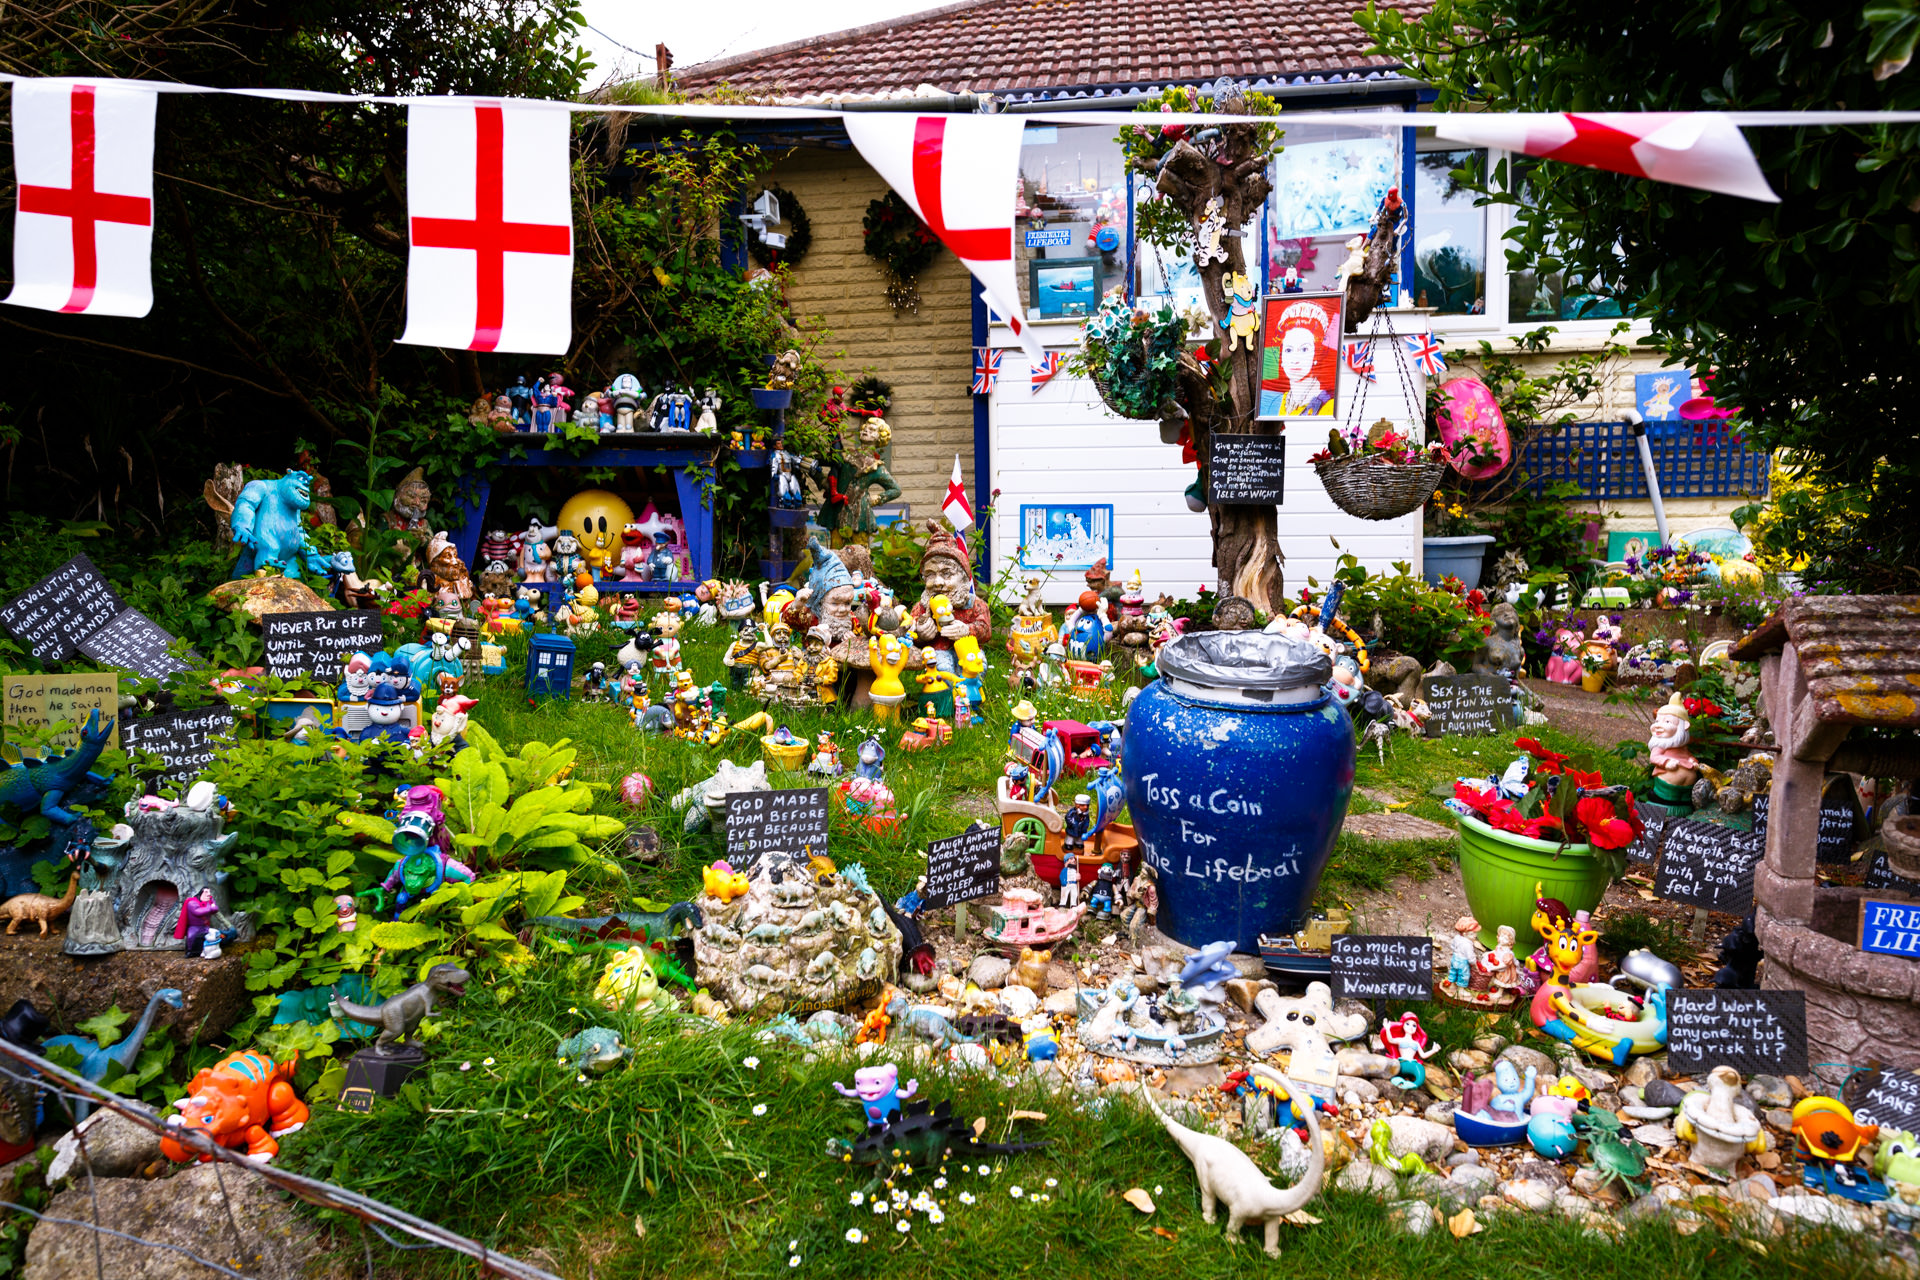 On our walk to The Needles Battery we passed this house. The front of it was full of funny little messages and toys from tv and film, such as The Simpsons, Disney, Sesame Street,Power Rangers and even Mr. Blobby!